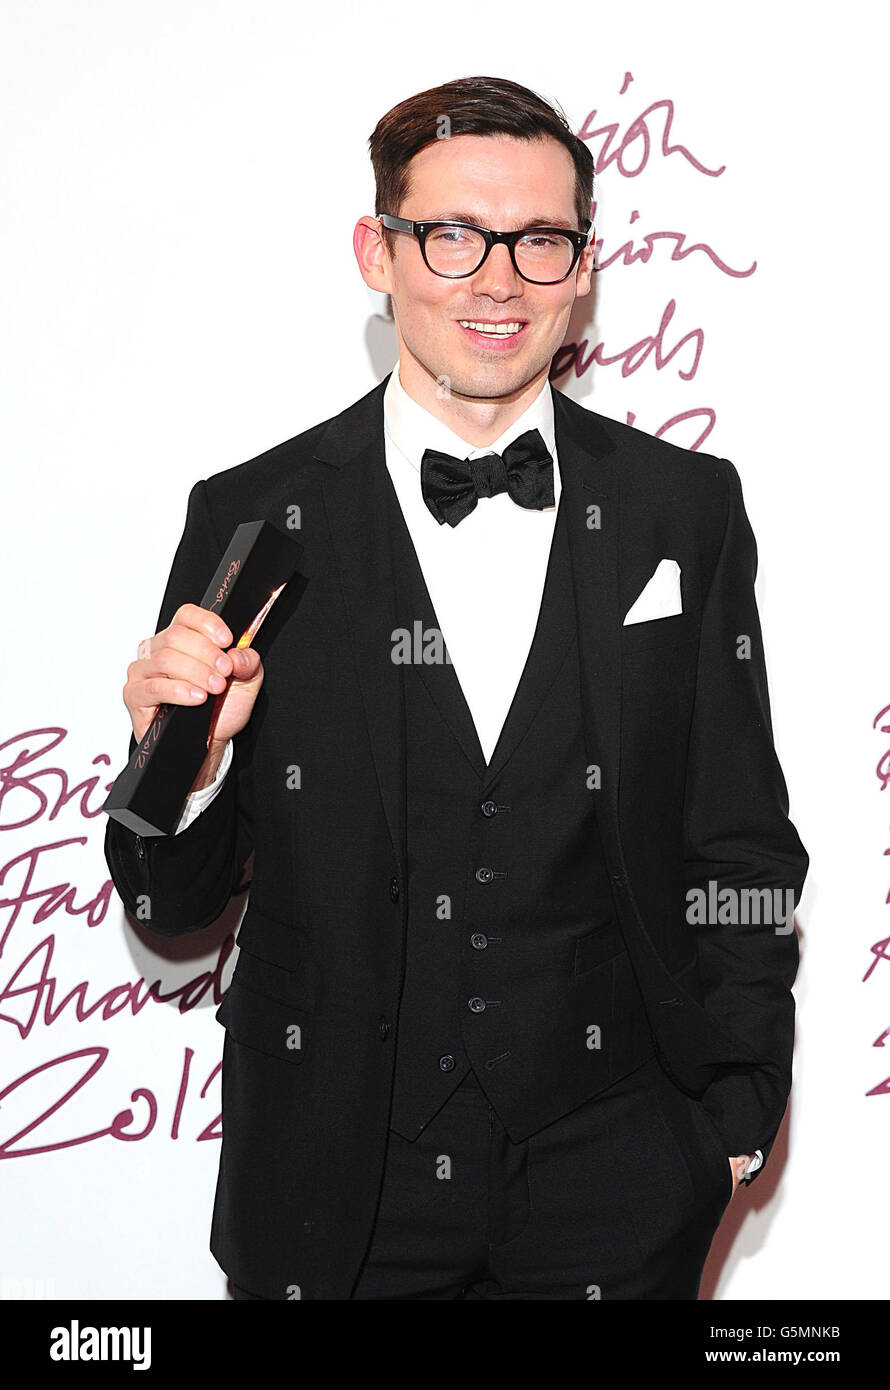 British Fashion Awards 2012 - London - Stock Image